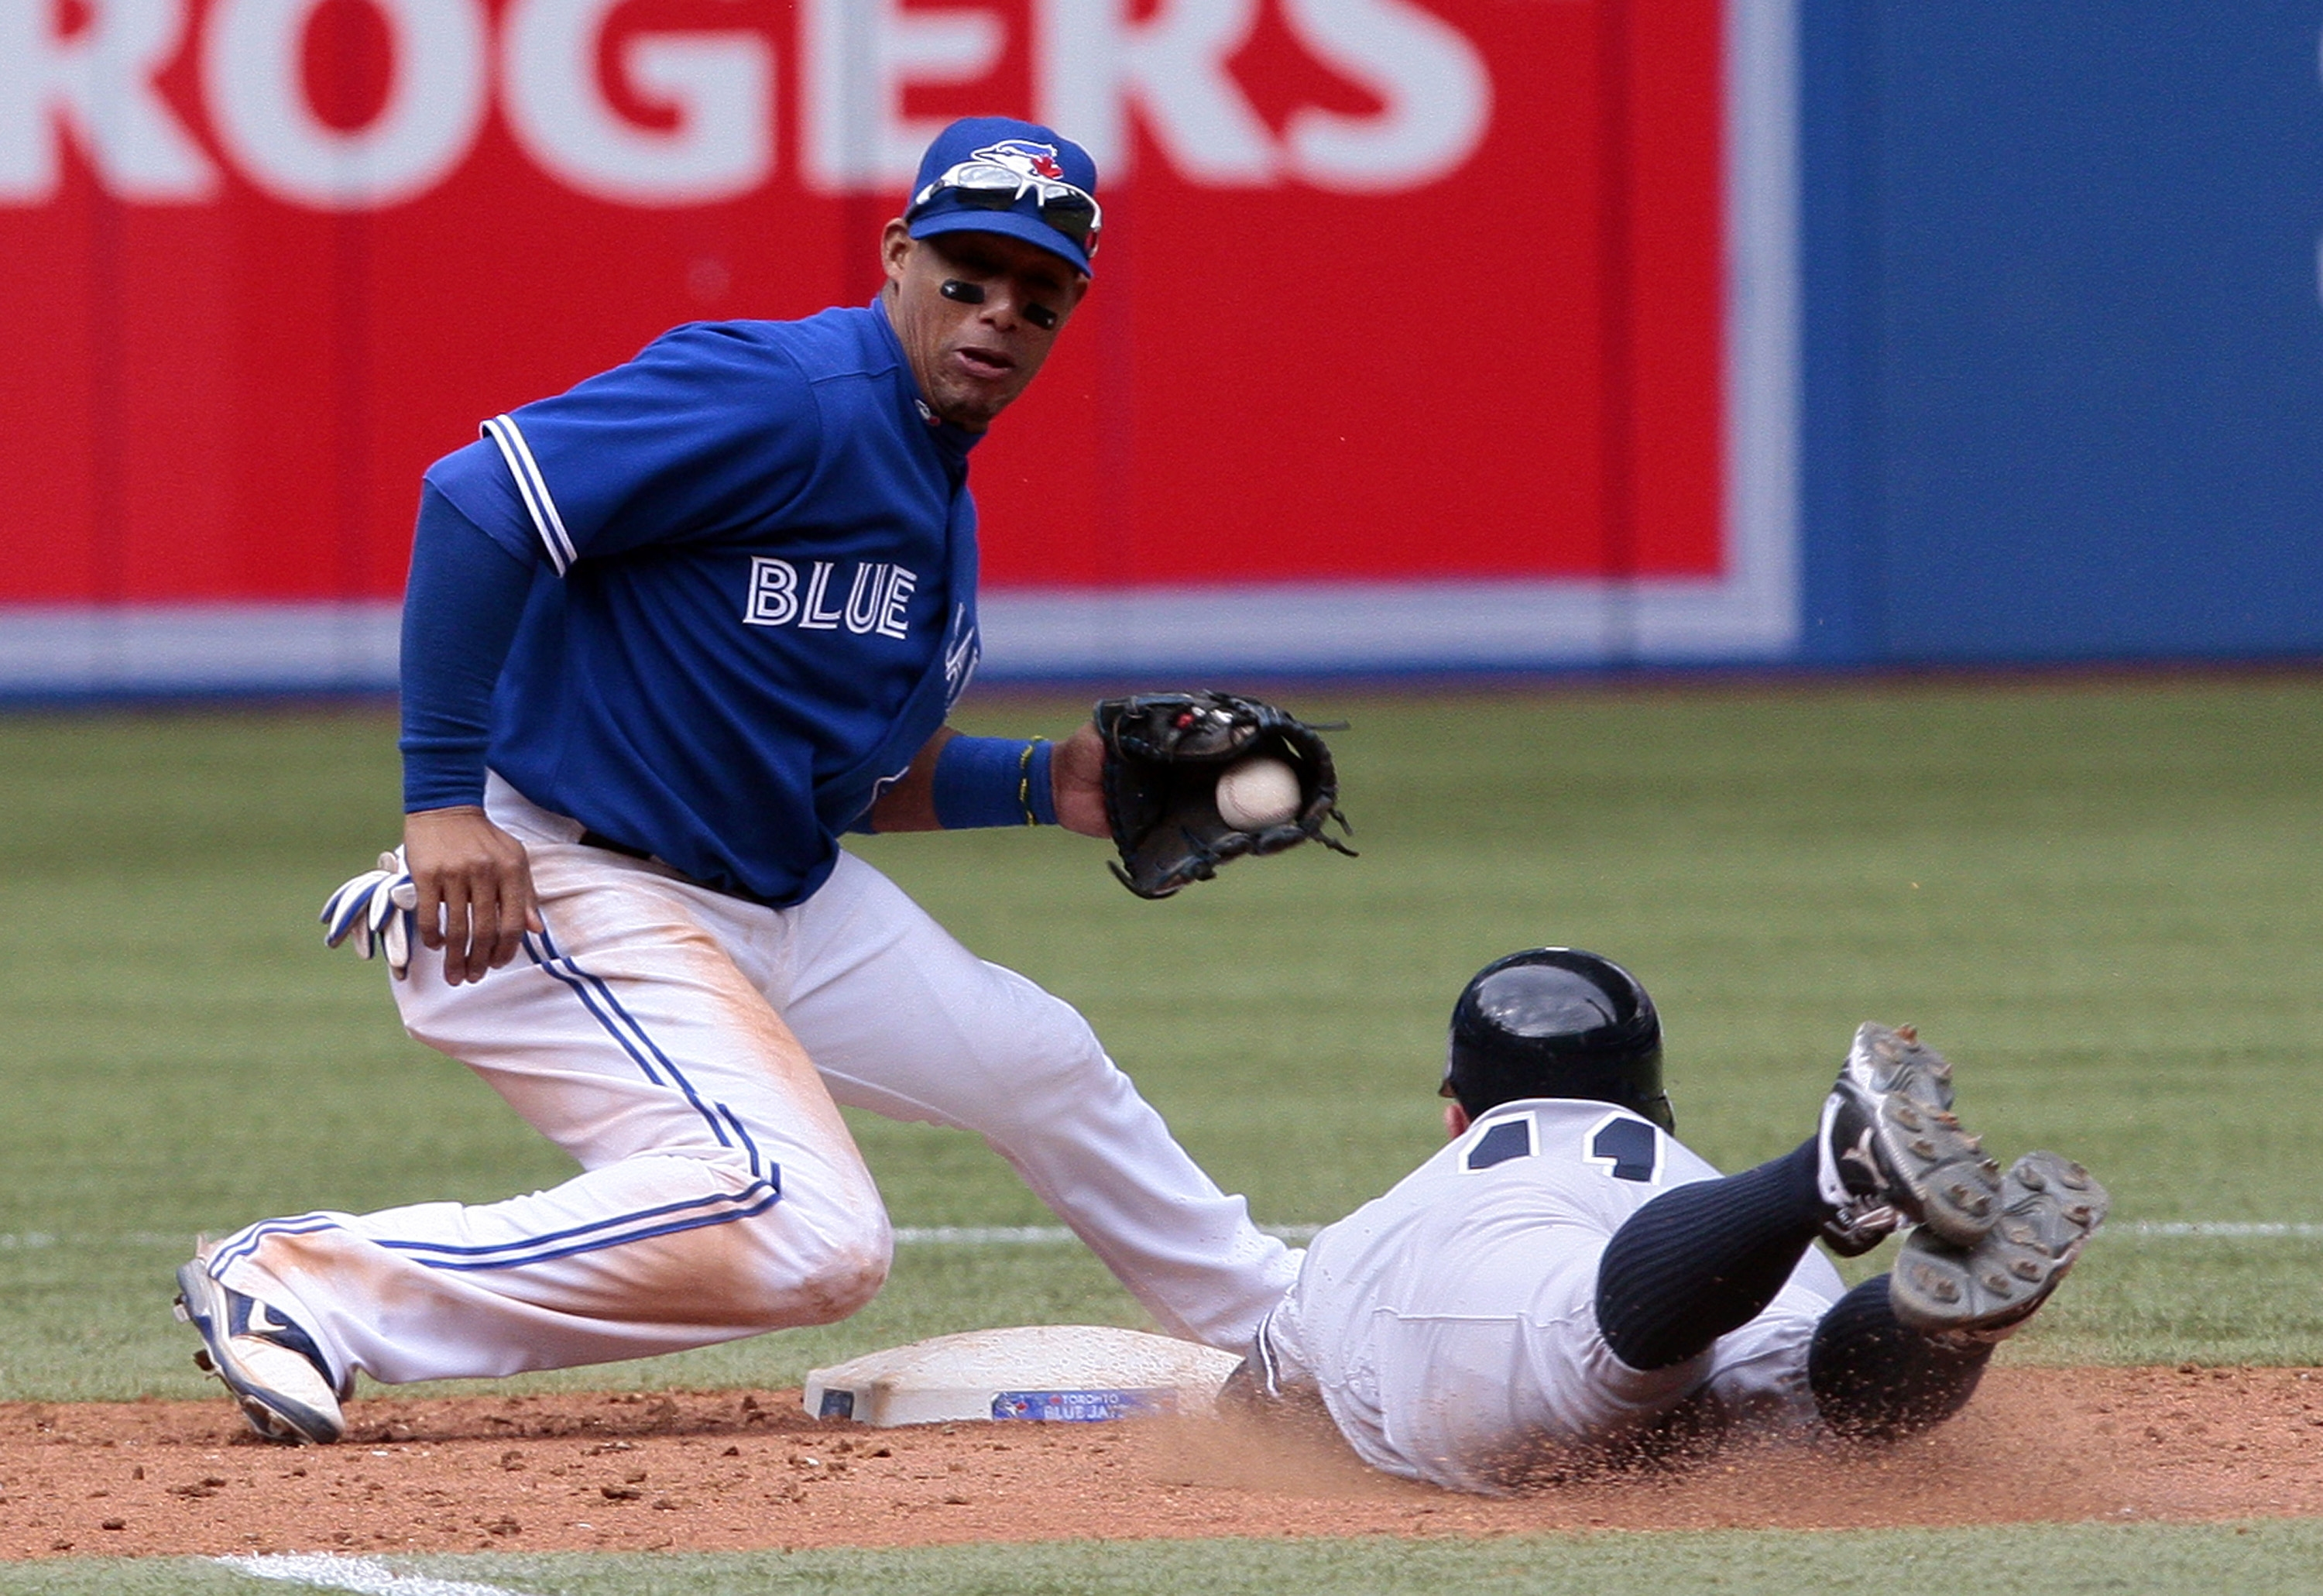 Getty Images    Toronto's Yunel Escobar fields the throw before tagging Brett Gardner of the Yankees on a steal attempt in the eighth inning Saturday.